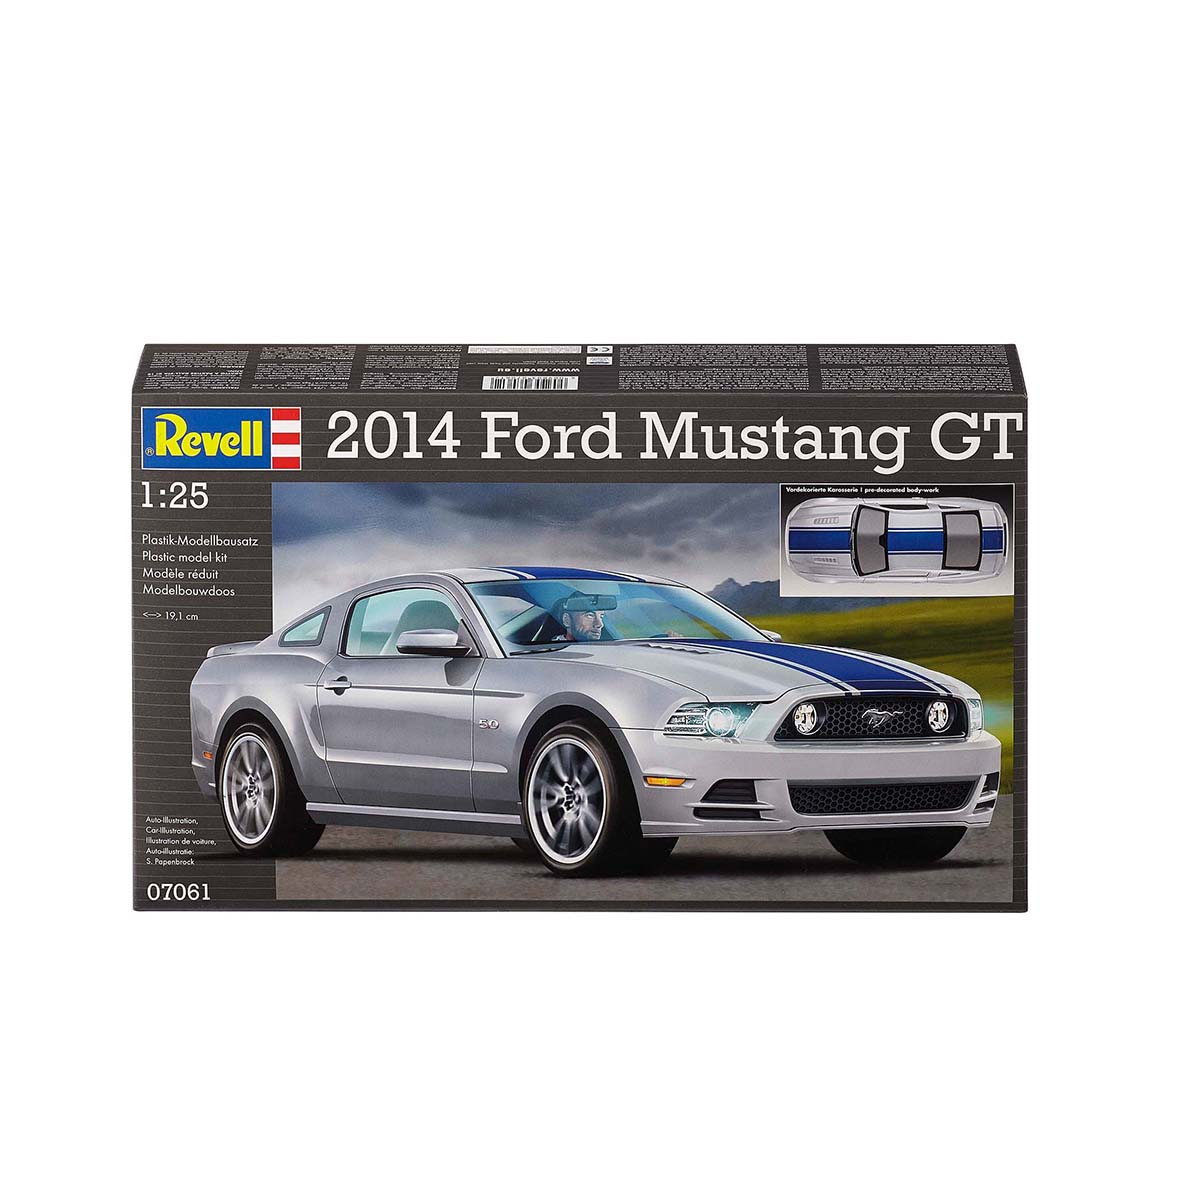 Maquette voiture - 2014 - Ford Mustang GT